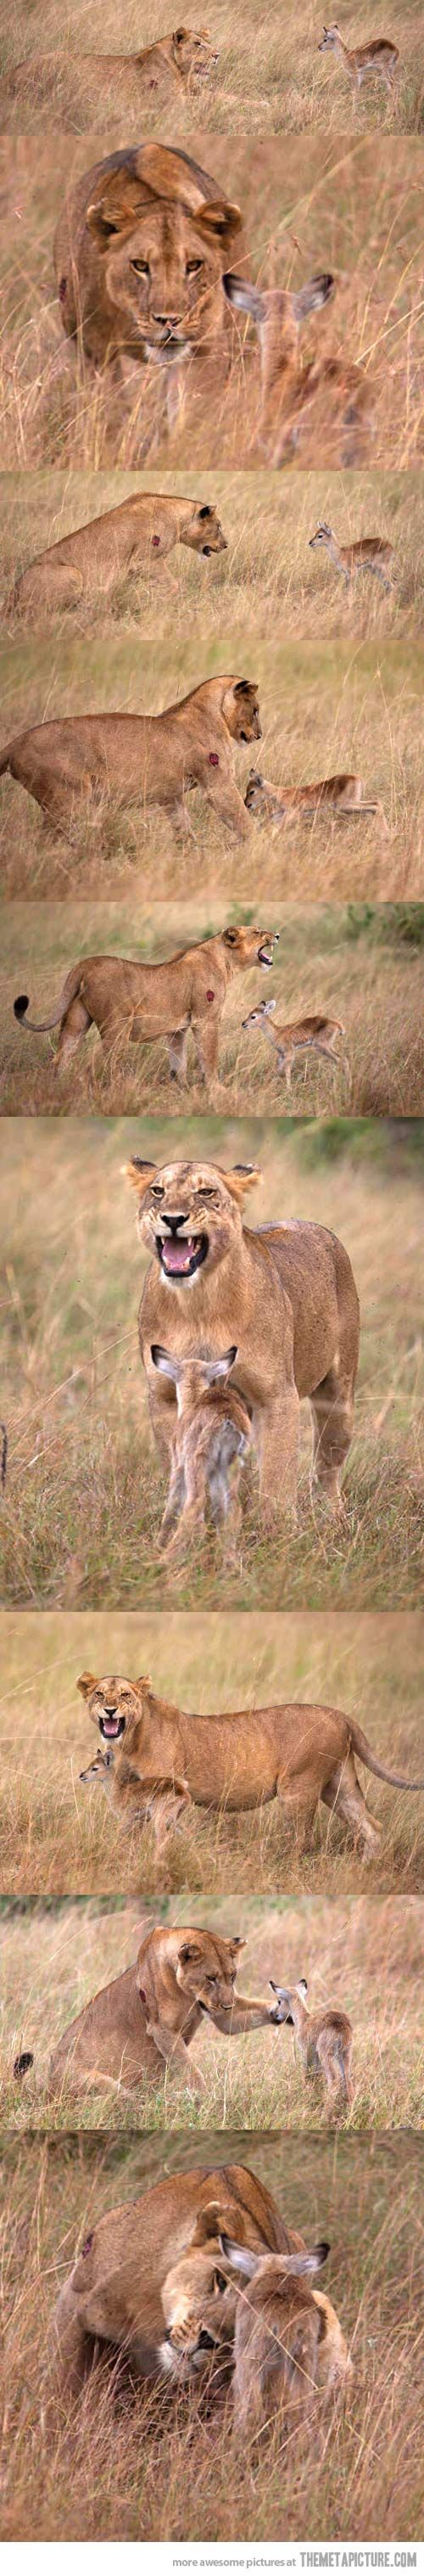 lion and gazelle relationship